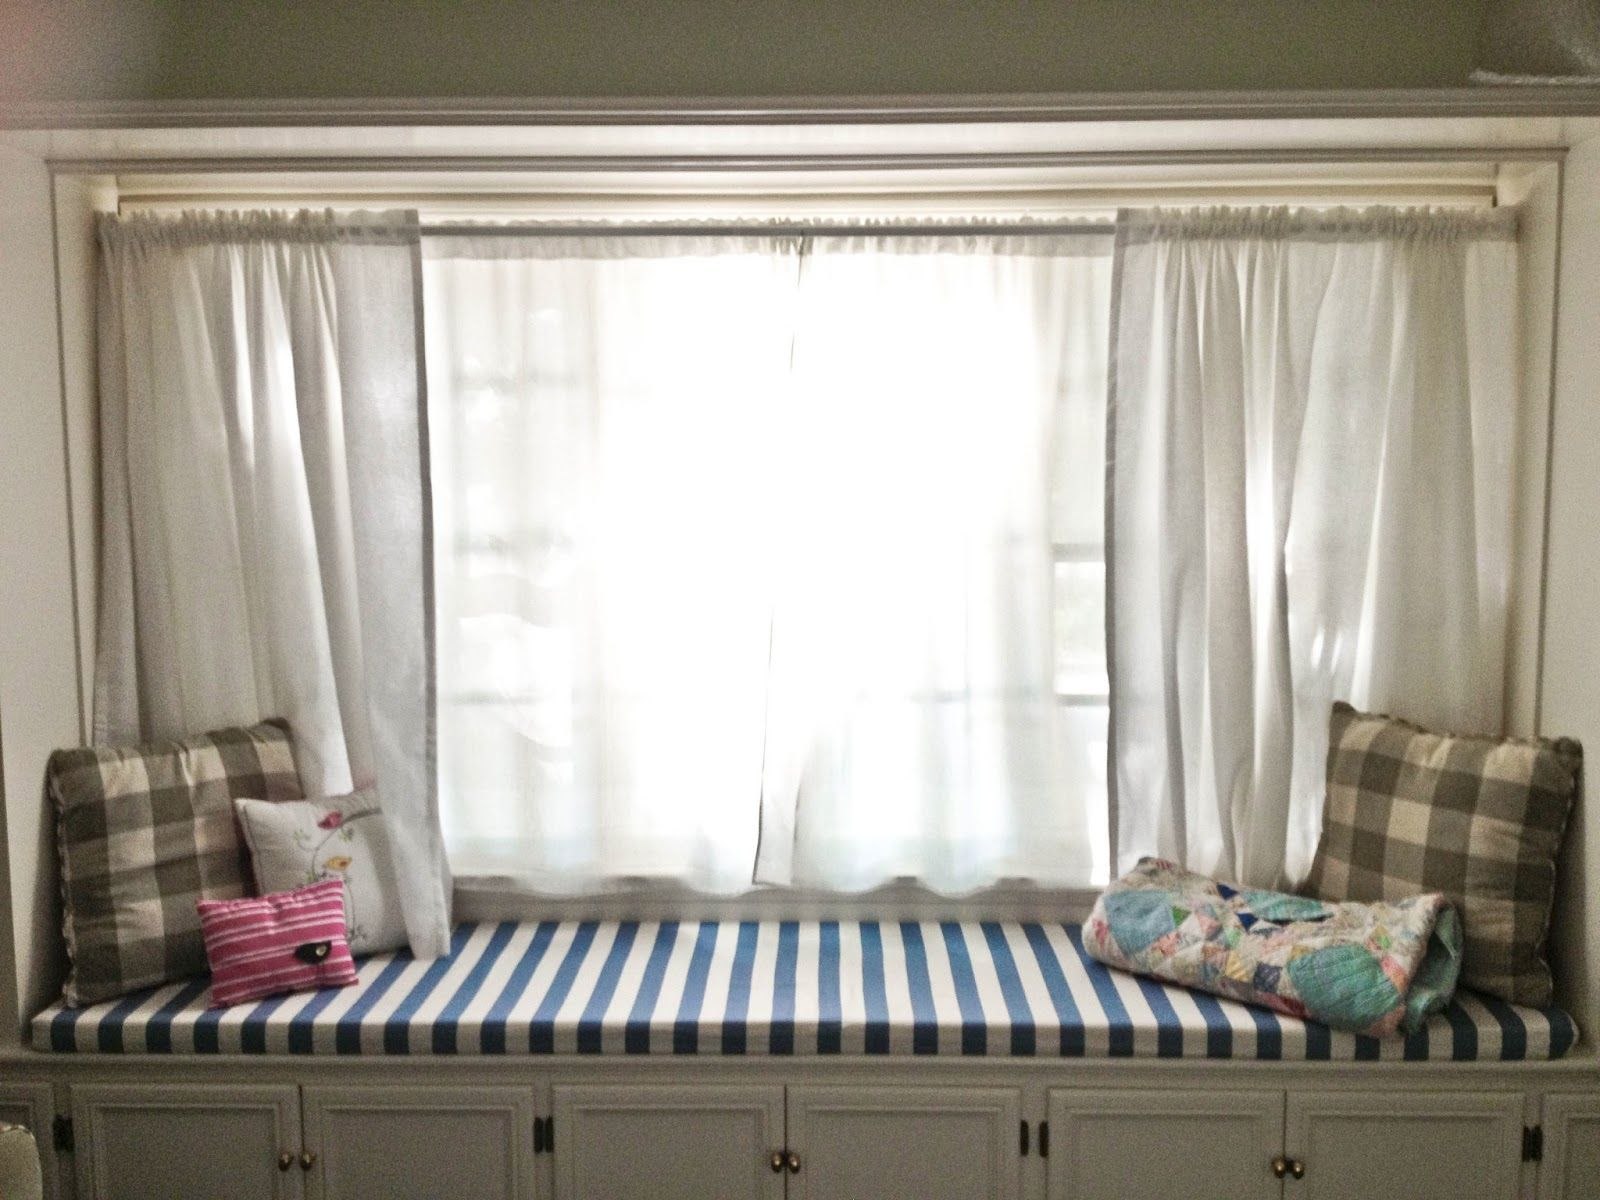 Window treatments for very wide windows - Bench Window Treatments For Wide Windows Beautiful Window Bench Medium Size Window With White Window Curtains A Window Bench With Storage And Cozy Seating